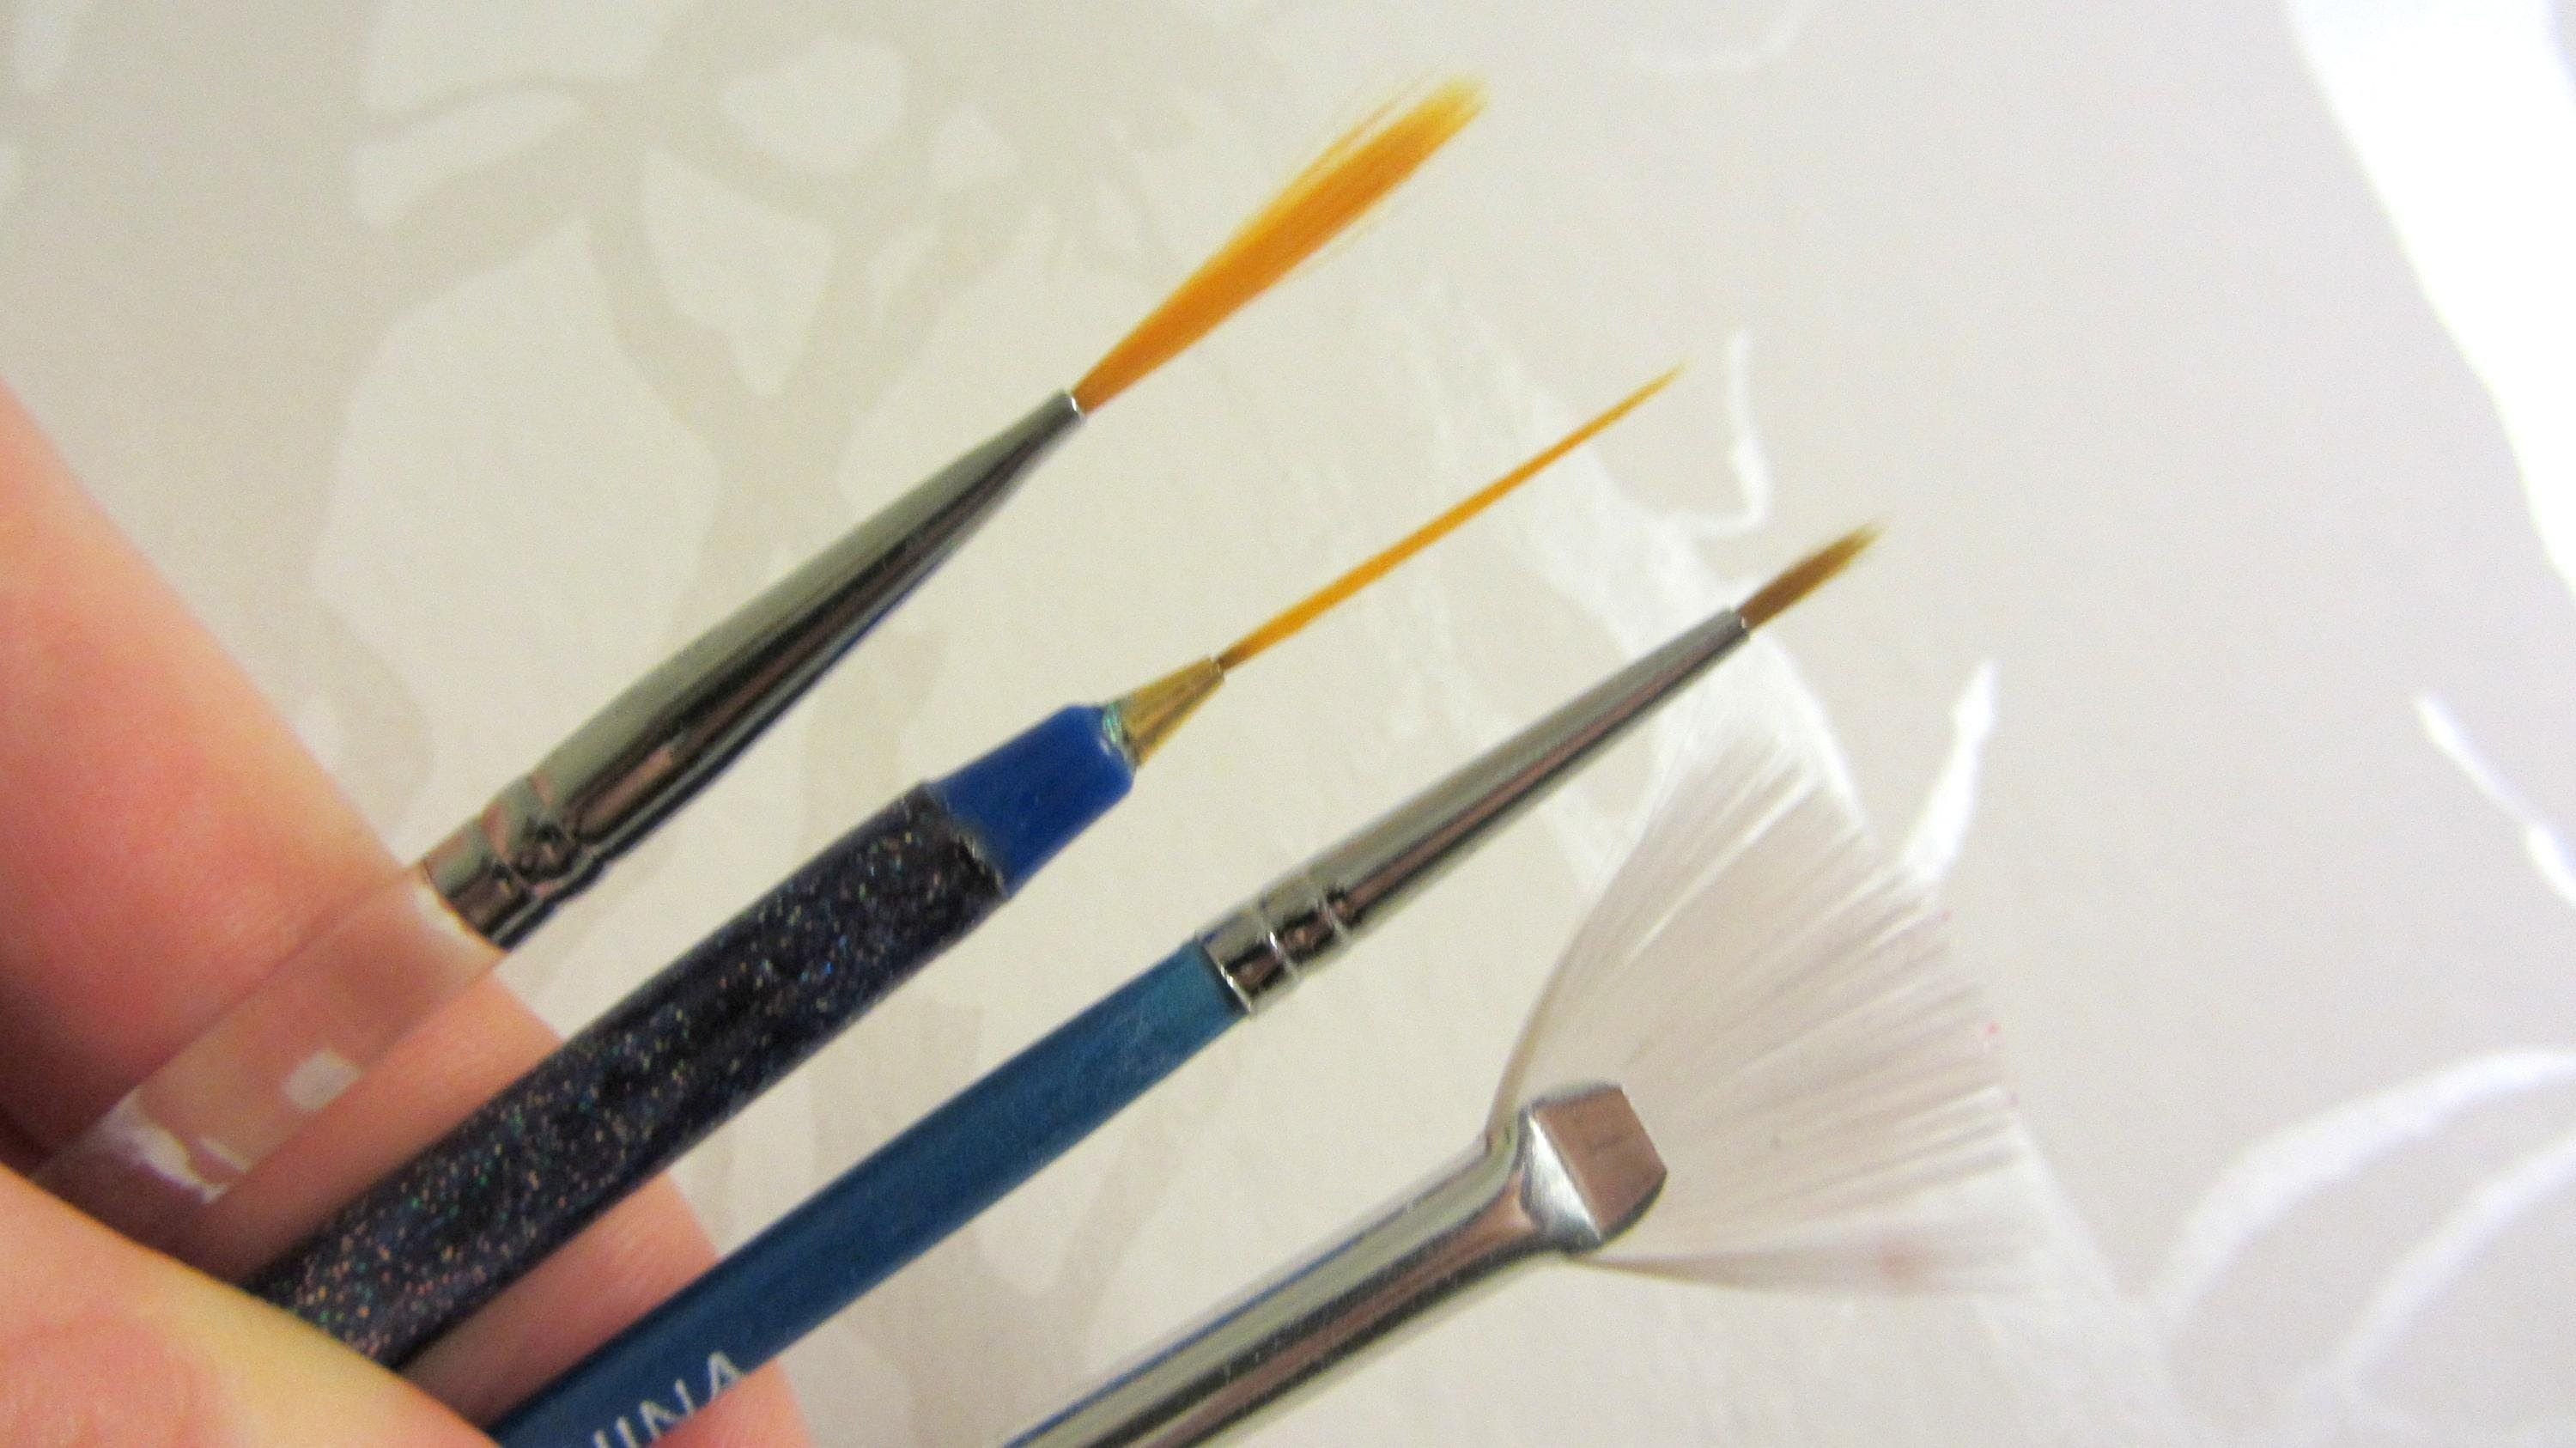 How To How I Clean My Nail Art Brushes Nail Art Brushes Nail Brushes Painted Nail Art